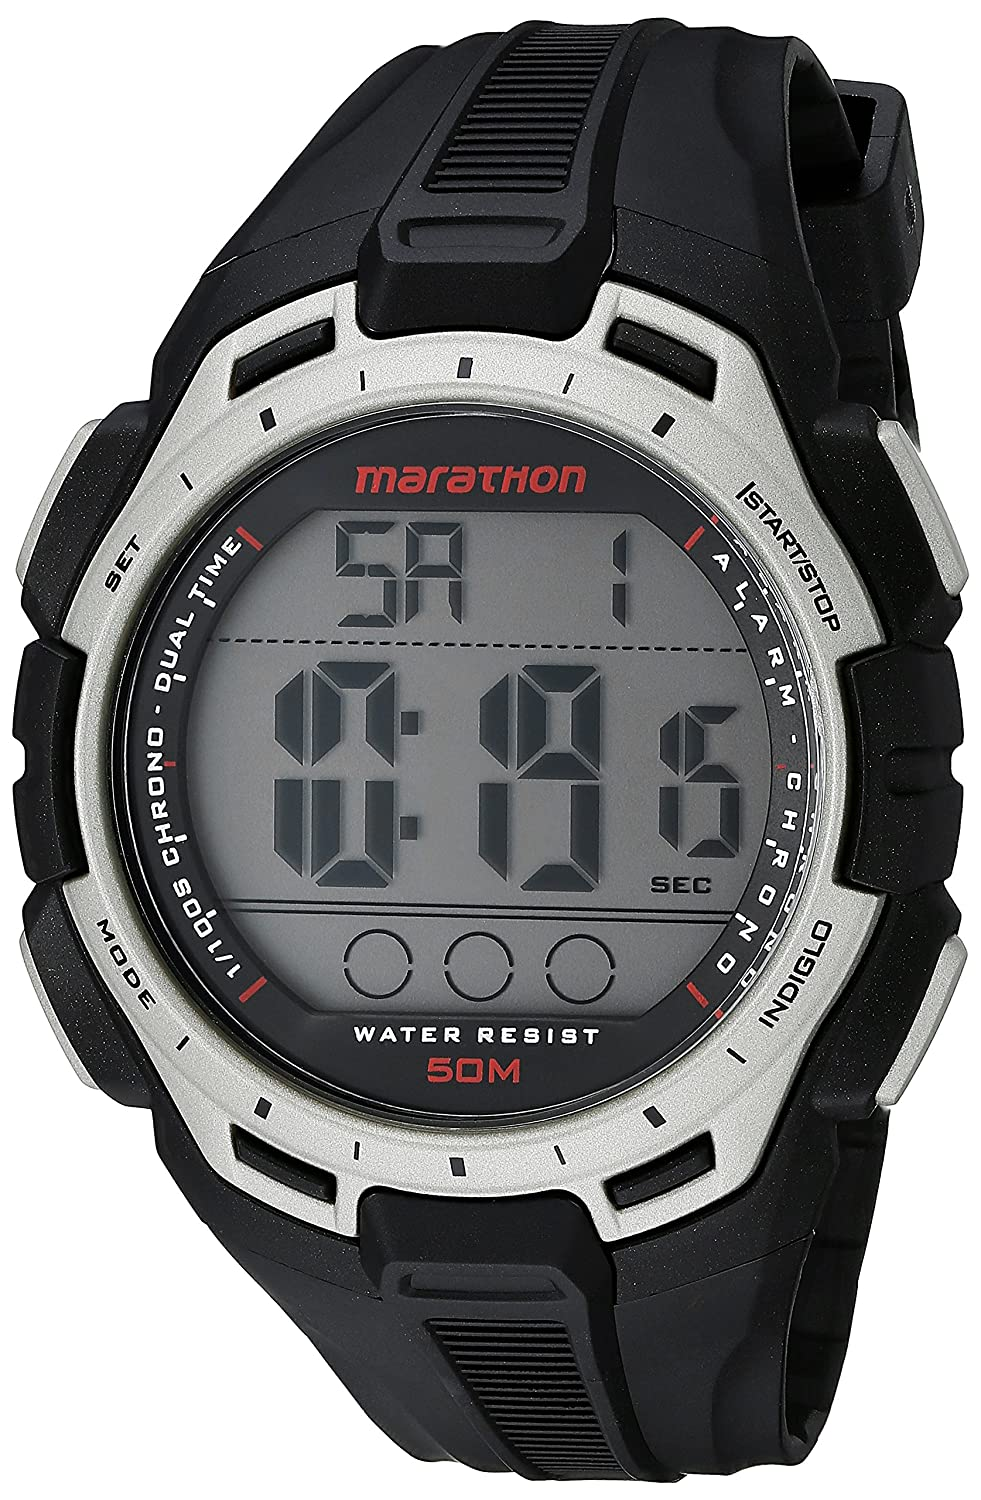 Timex best sports watches for men in India